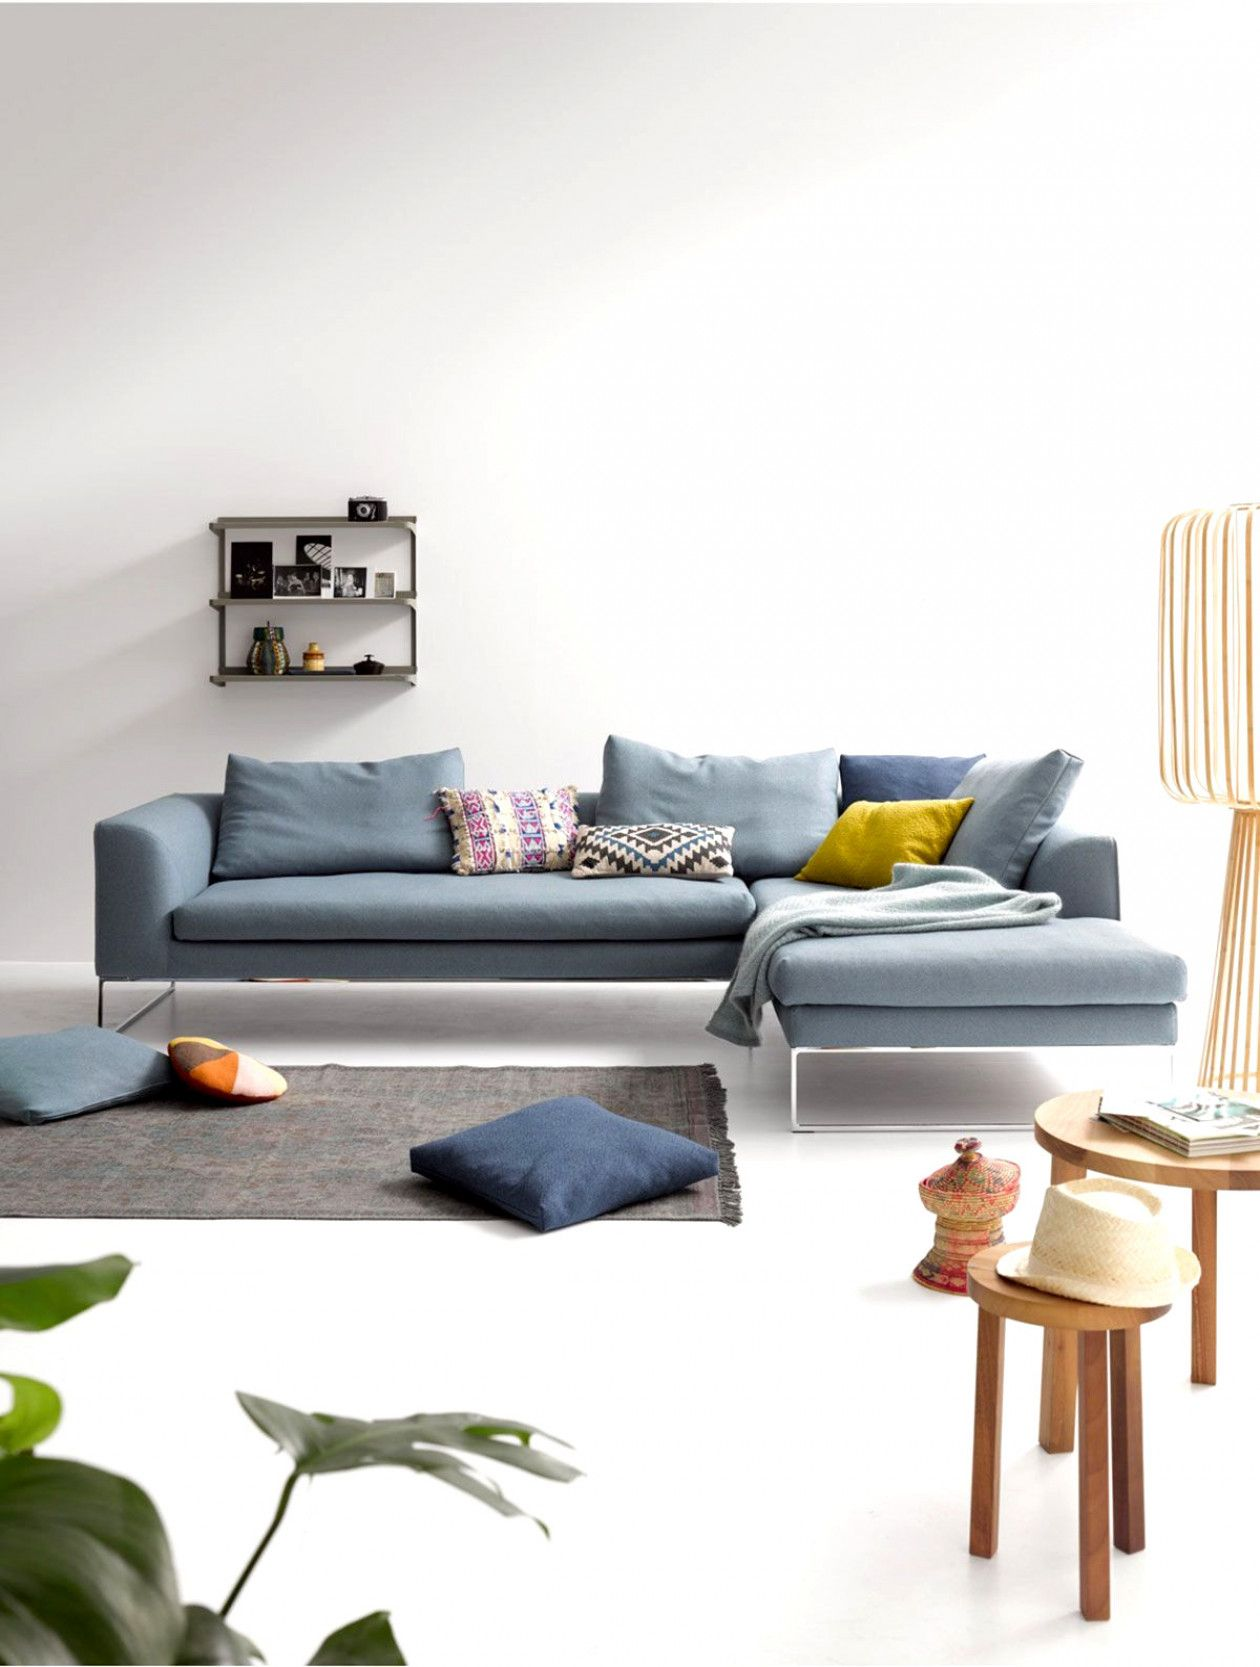 How To Put Wallpaper Lounge Sofa Living Room Furniture Cozy Room